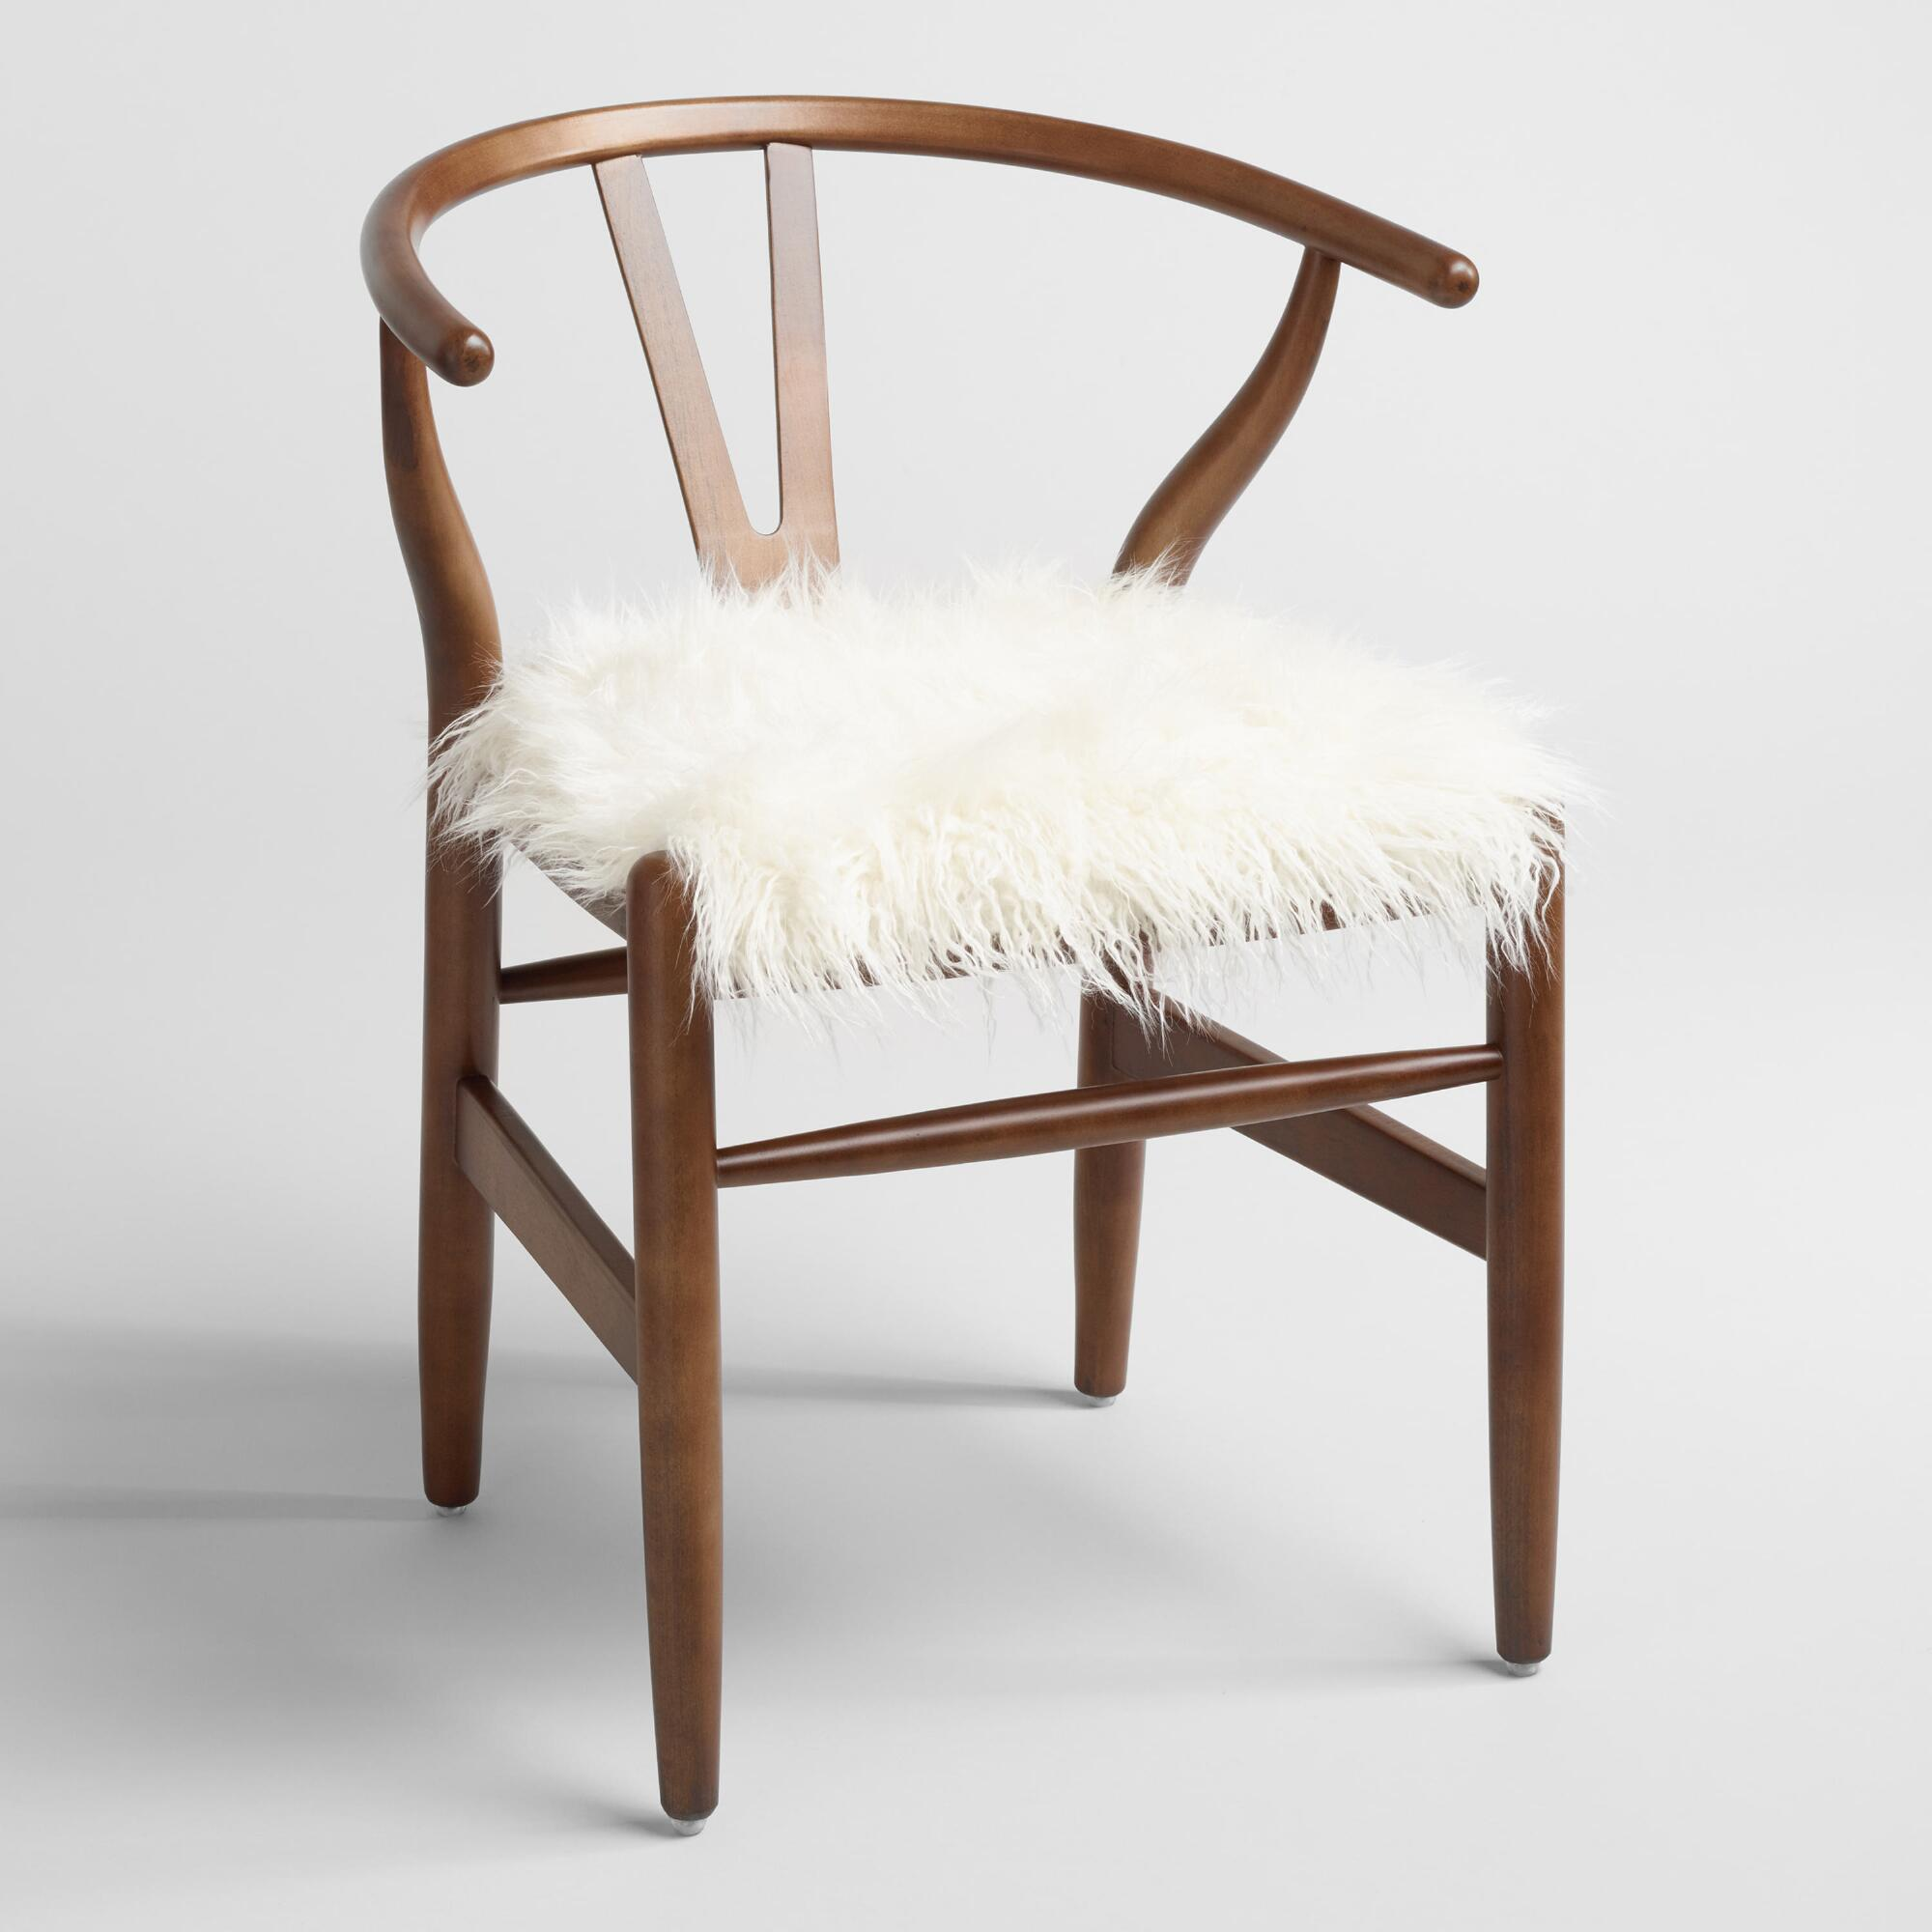 Wooden chairs with armrest - Ivory Flokati Donnan Wishbone Chair